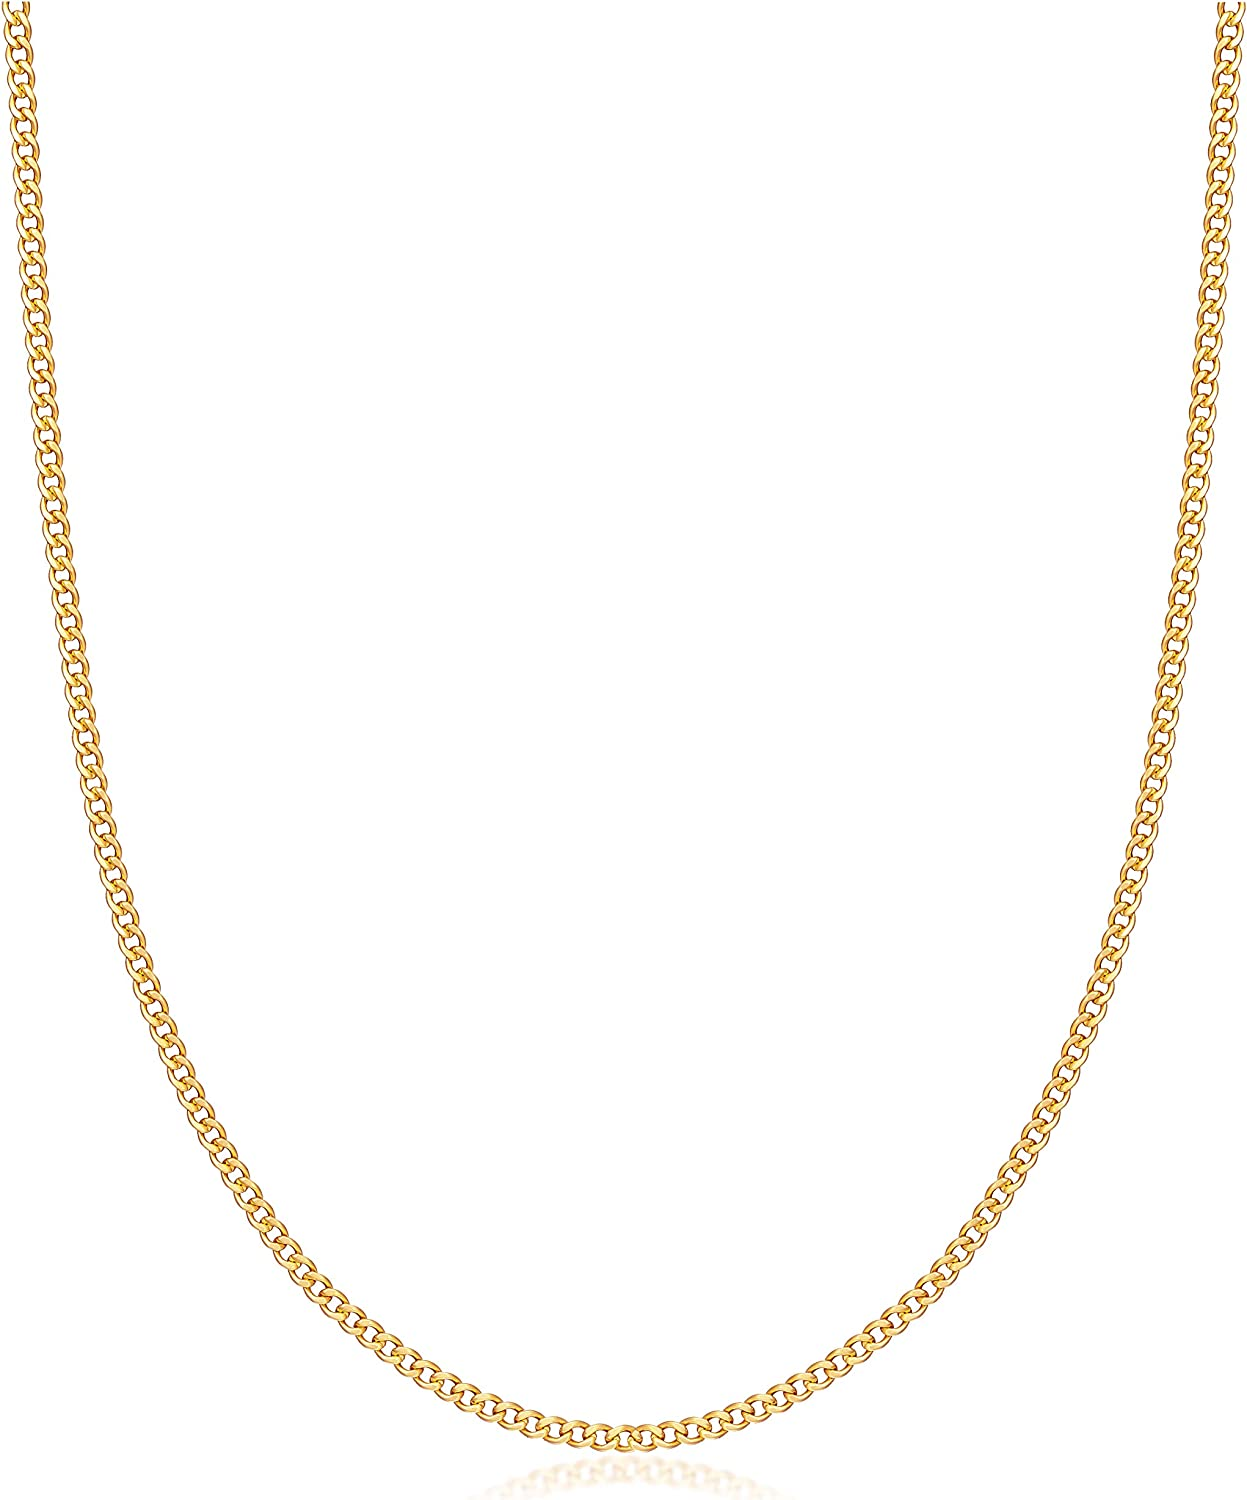 Womens Gold Chain Necklace | Barzel 18K Gold Plated Curb / Cuban Link Gold Chain Necklace 2MM, 3MM, 4MM, 5MM For Women or Men - Made In Brazil